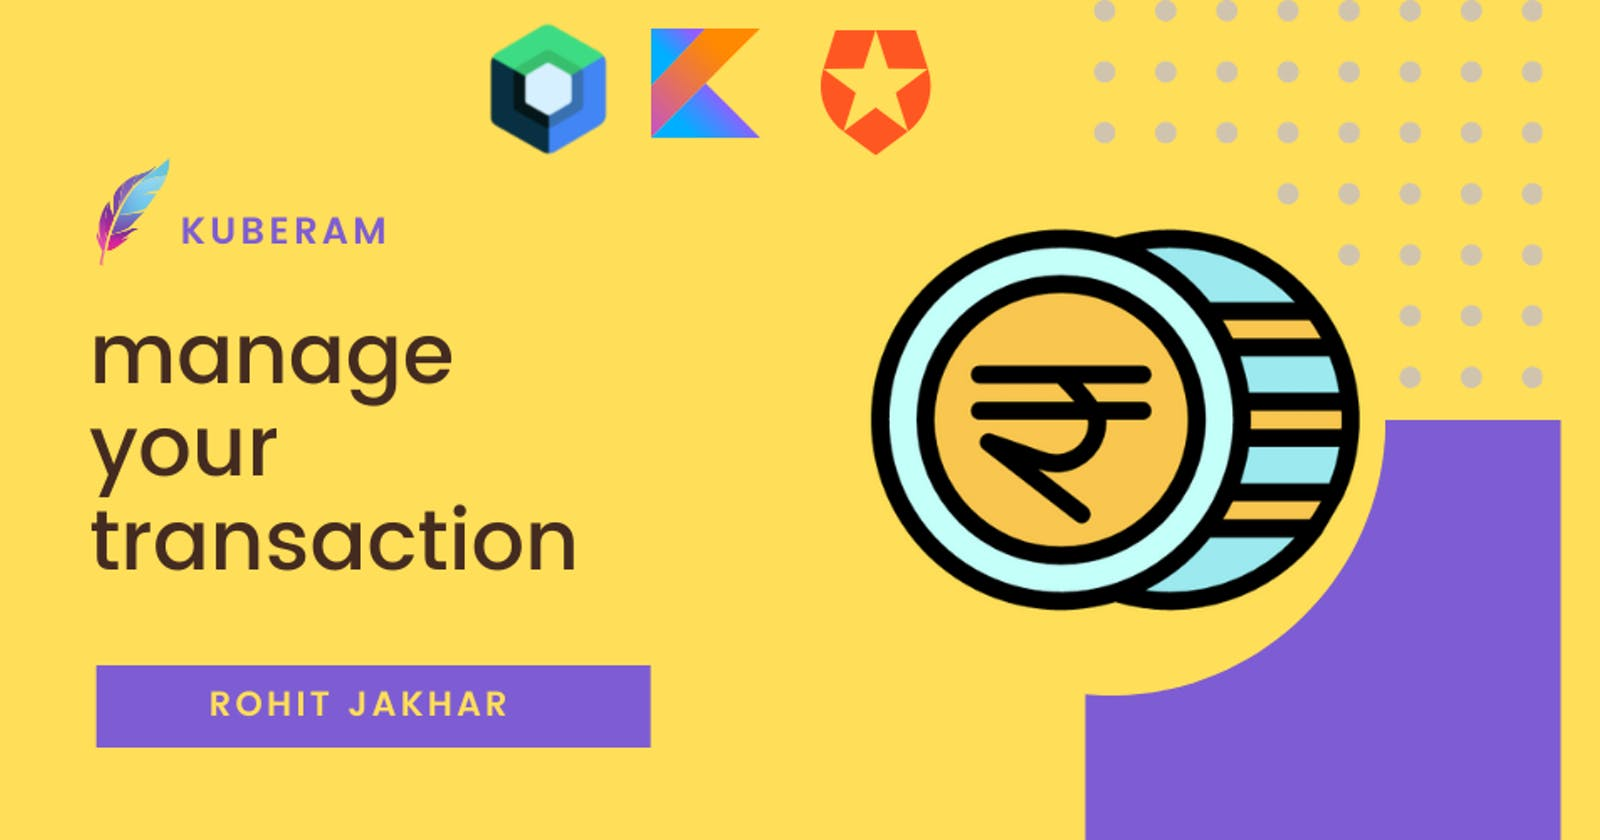 Kuberam - Manage all your transactions. Auth0 Hackathon.